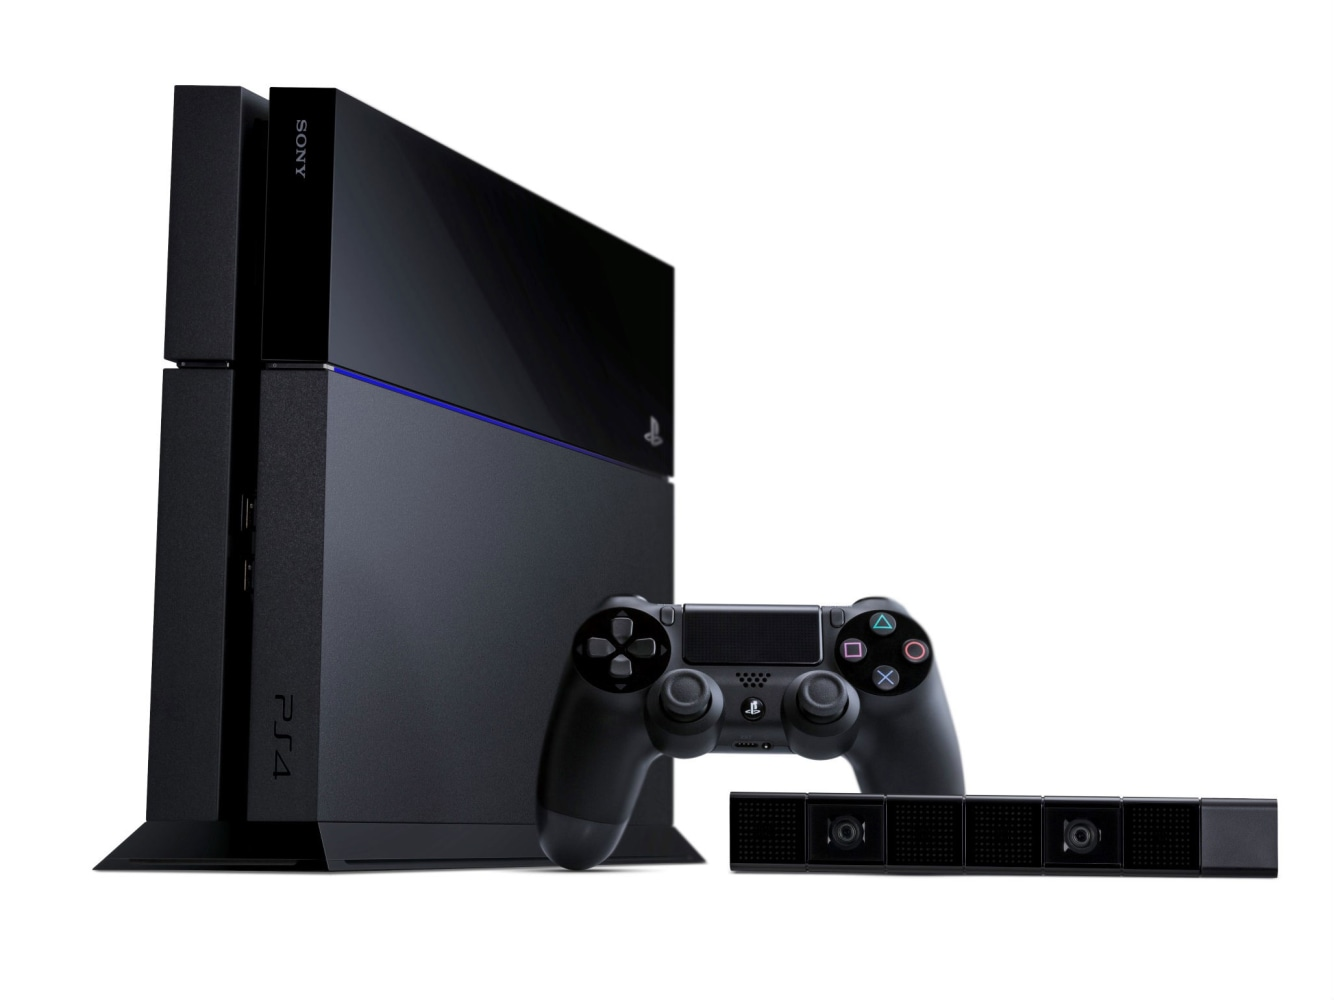 9841015a5c1 Sony and Microsoft clarified differences between the PlayStation 4 and Xbox  One s premium online features this